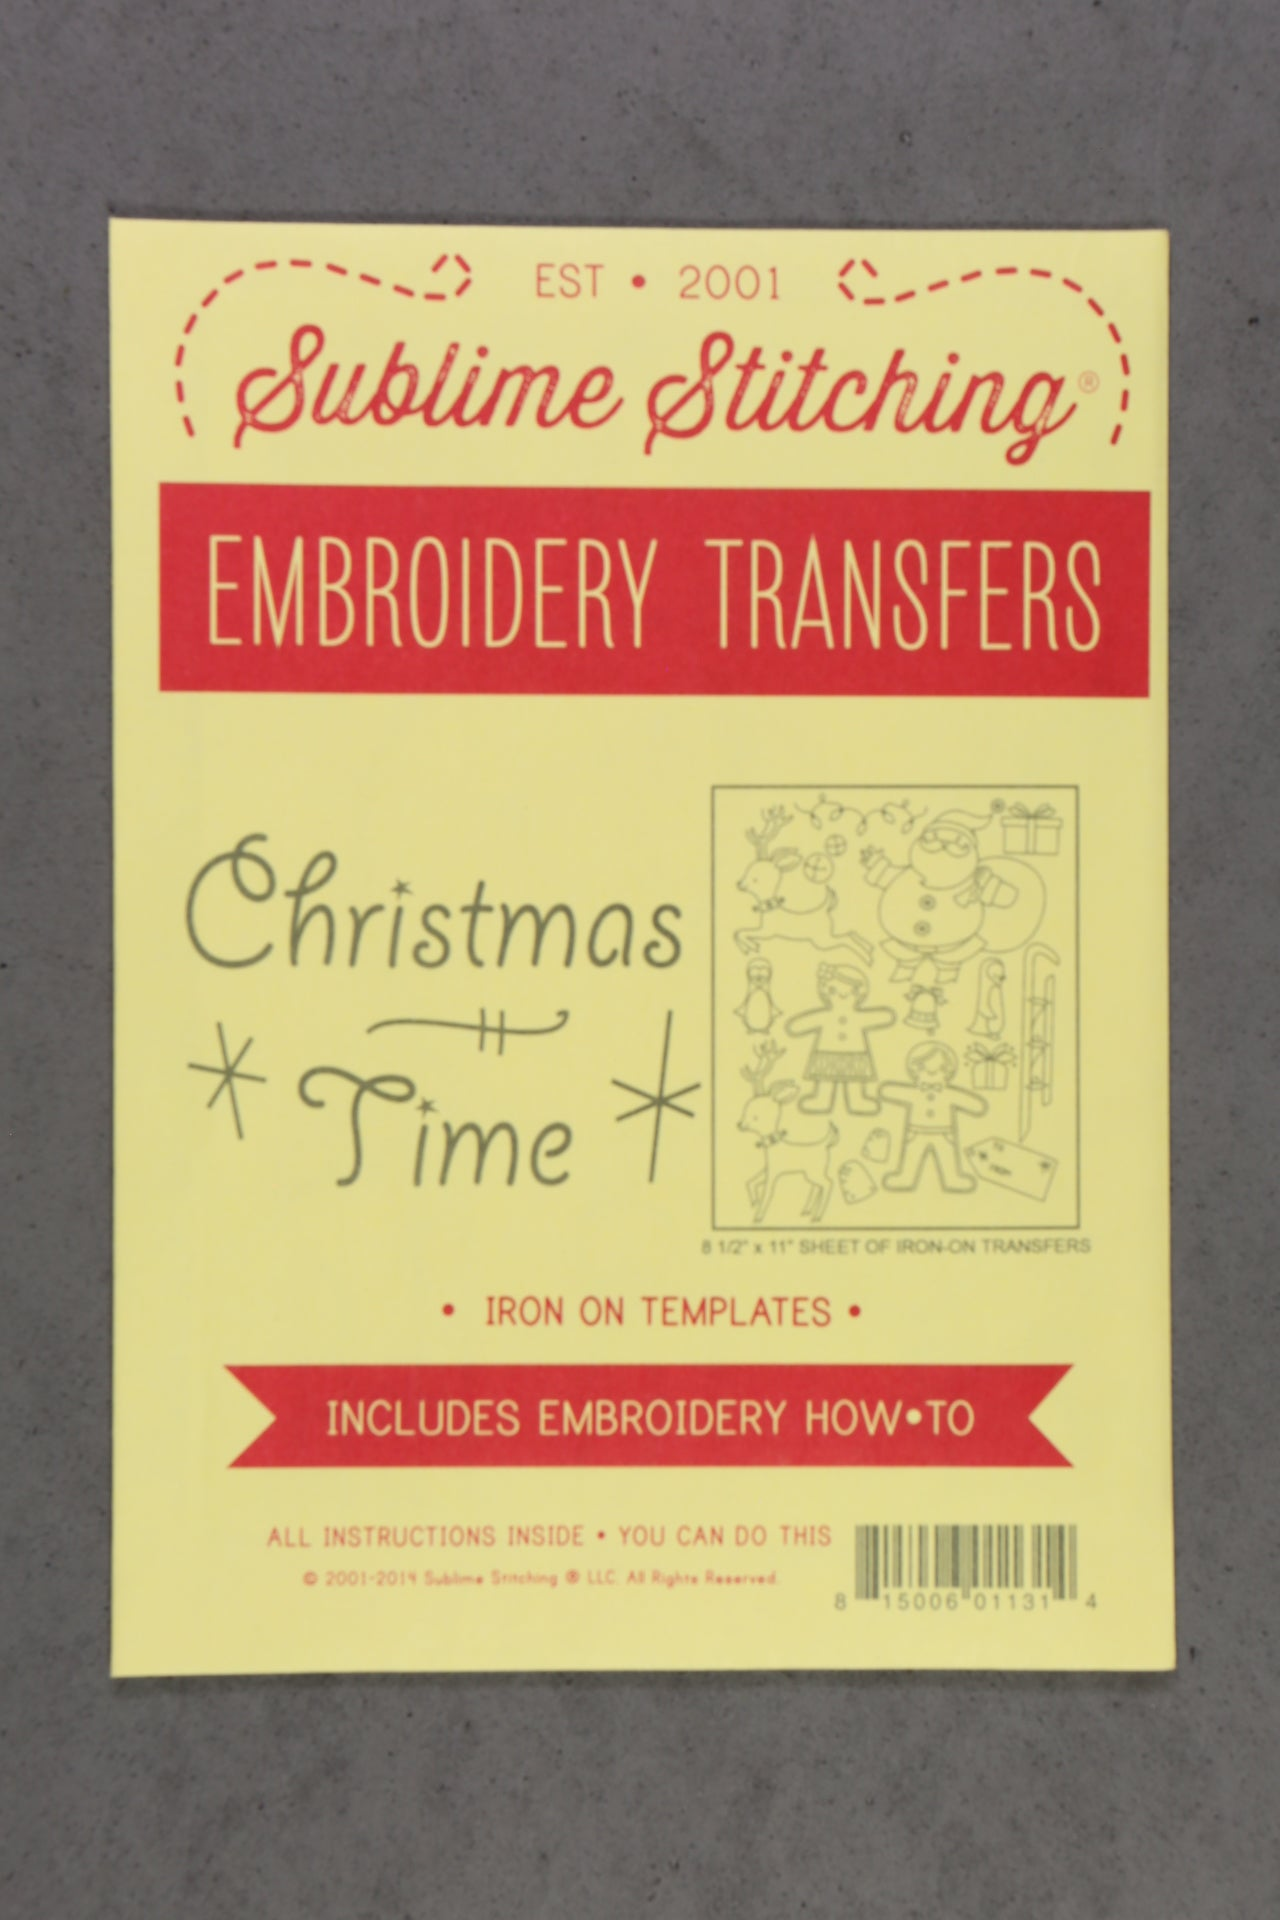 Sublime Stitching Embroidery Transfers Pattern – The Knitting Tree, L.A.